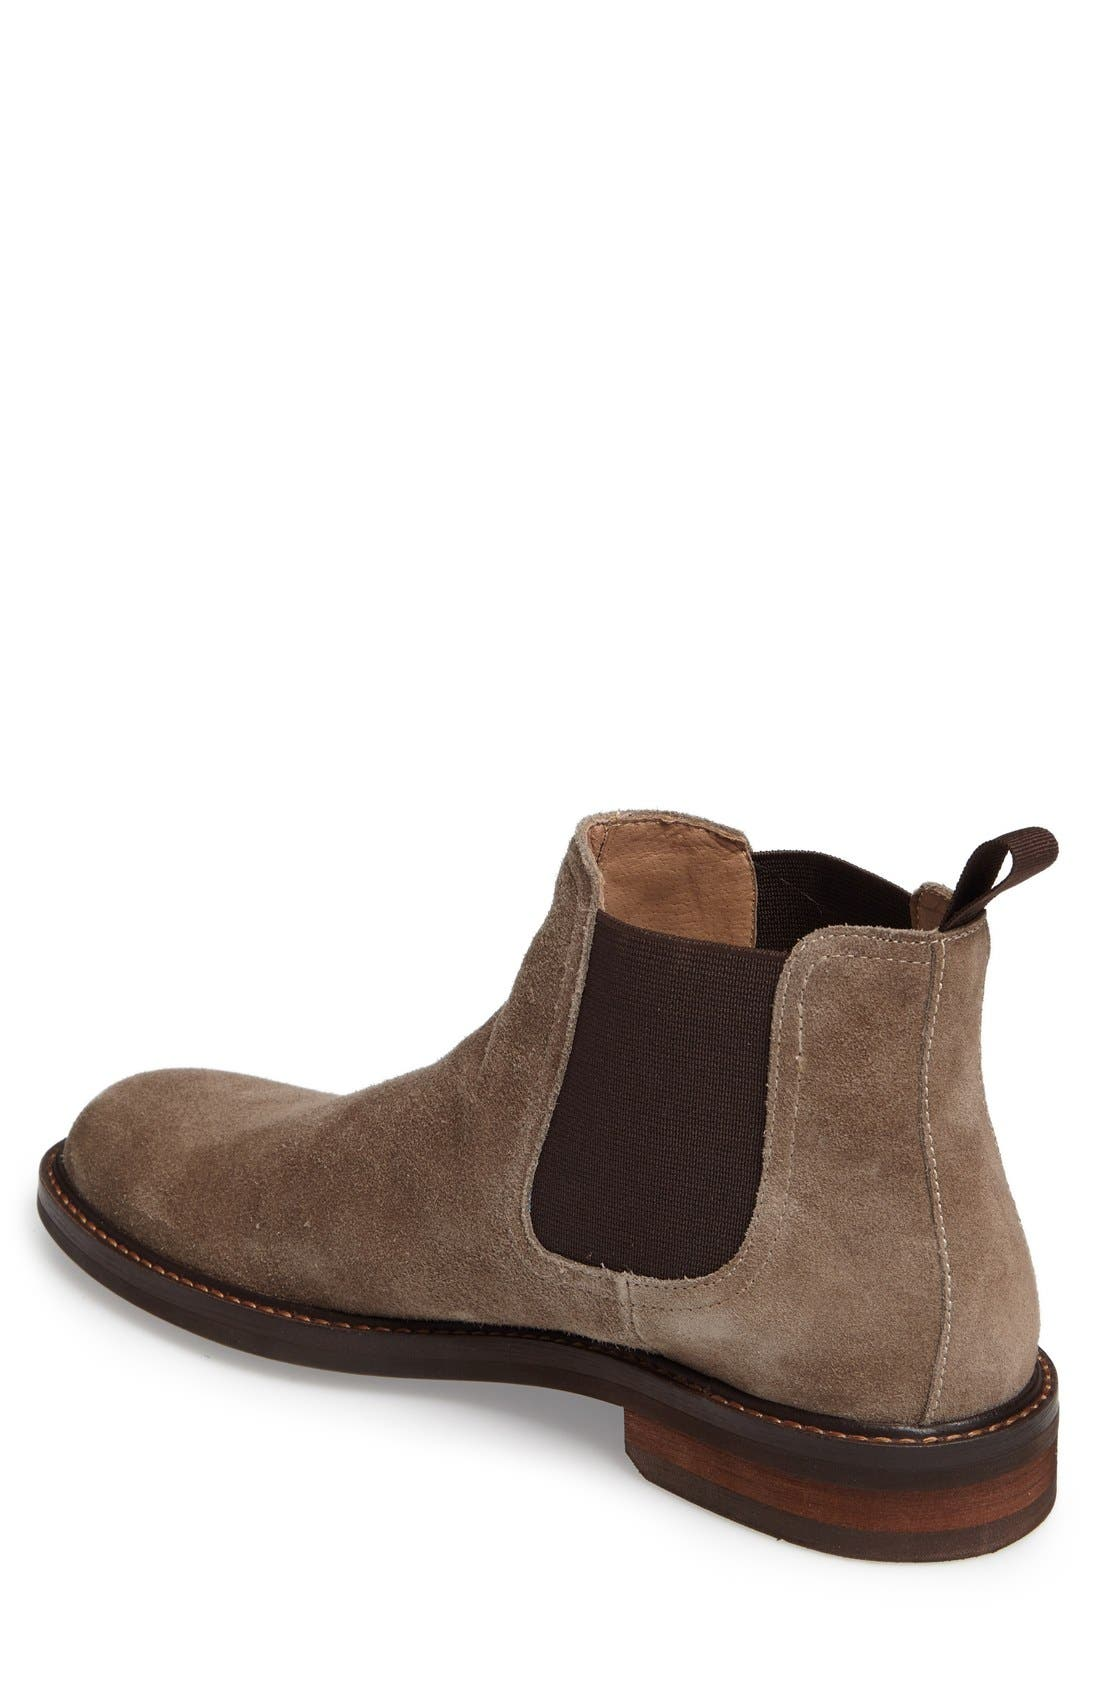 Alternate Image 2  - 1901 Horton Chelsea Boot (Men)